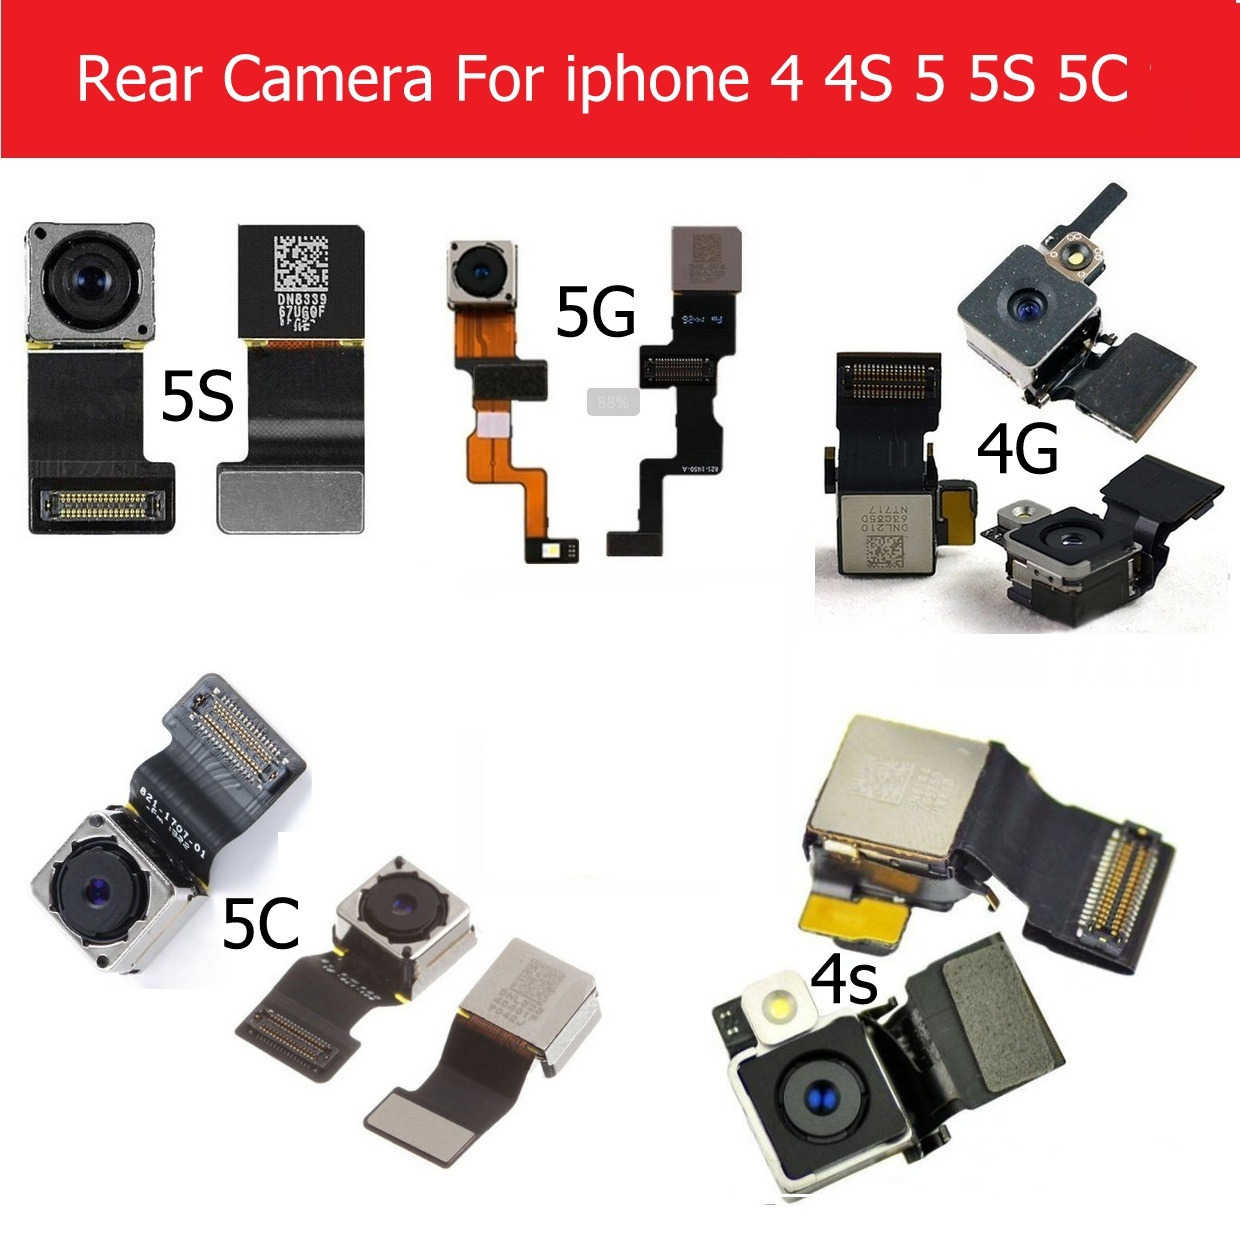 Genuine Main Back Camera For Iphone 4 4s 5 5s 5c Rear Camera With Flex Cable Facing Model 100% Tested Cell Phone Parts